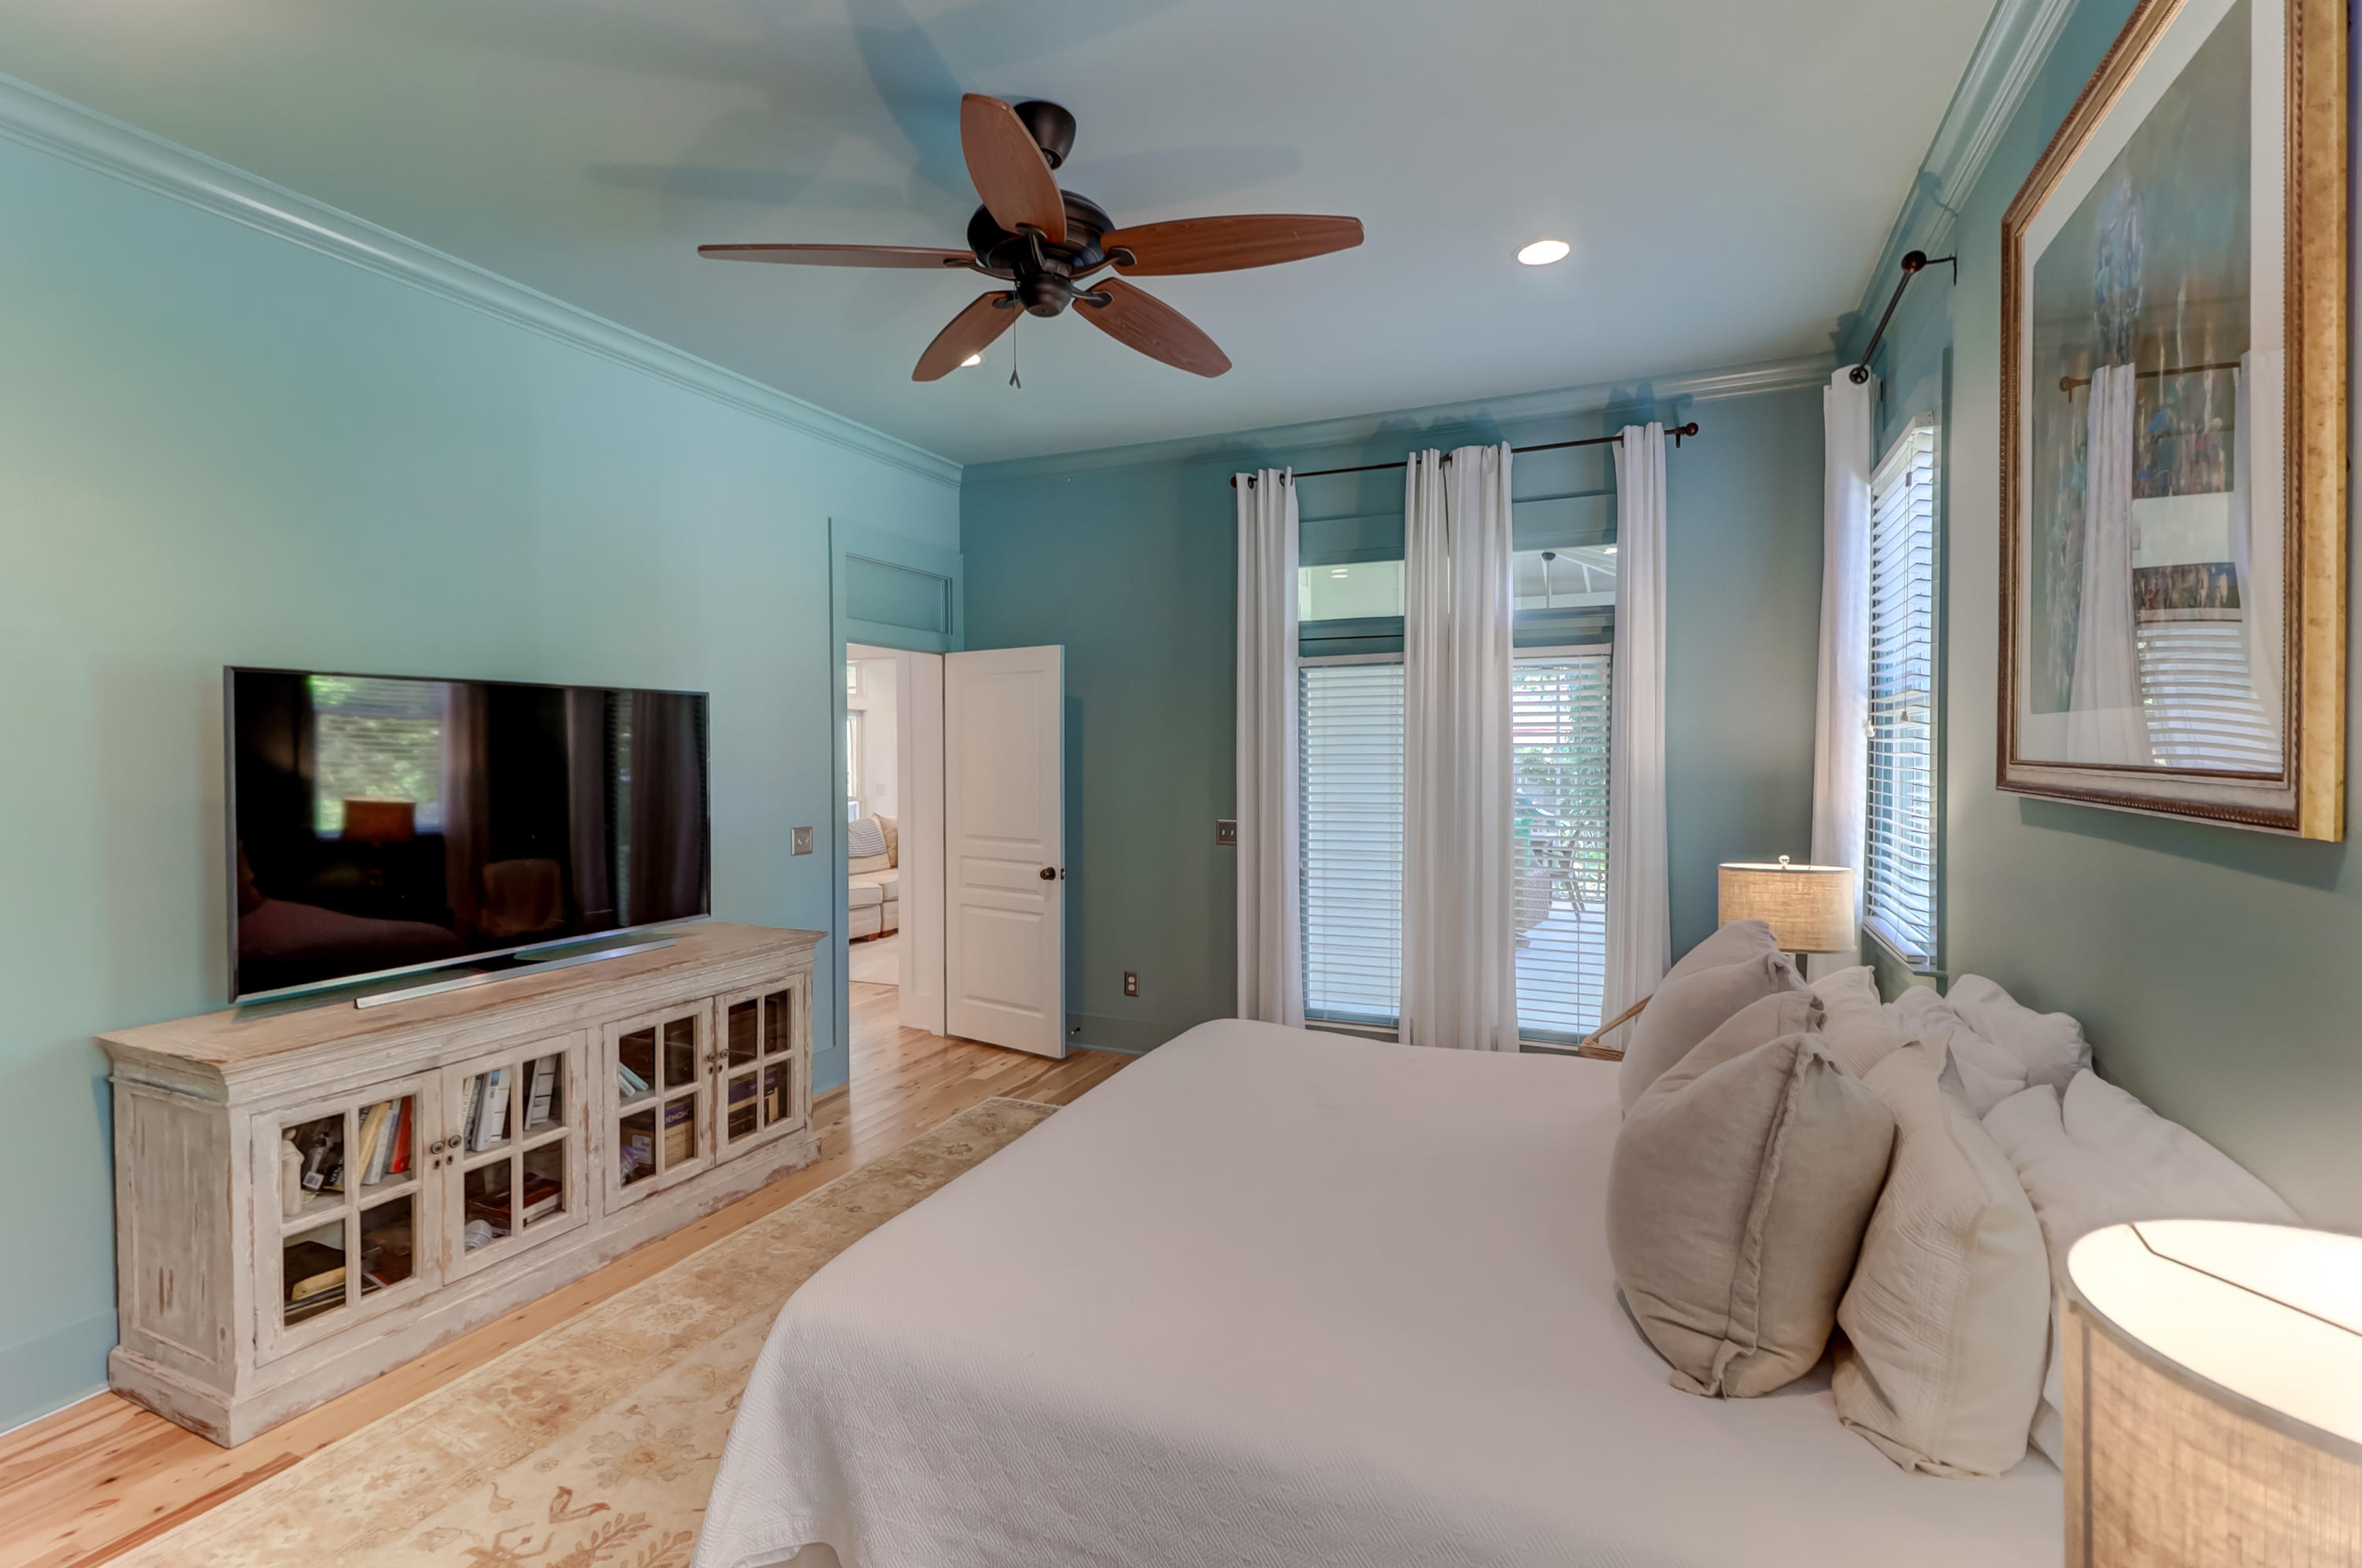 The Villages In St Johns Woods Homes For Sale - 5056 Coral Reef Dr, Johns Island, SC - 65